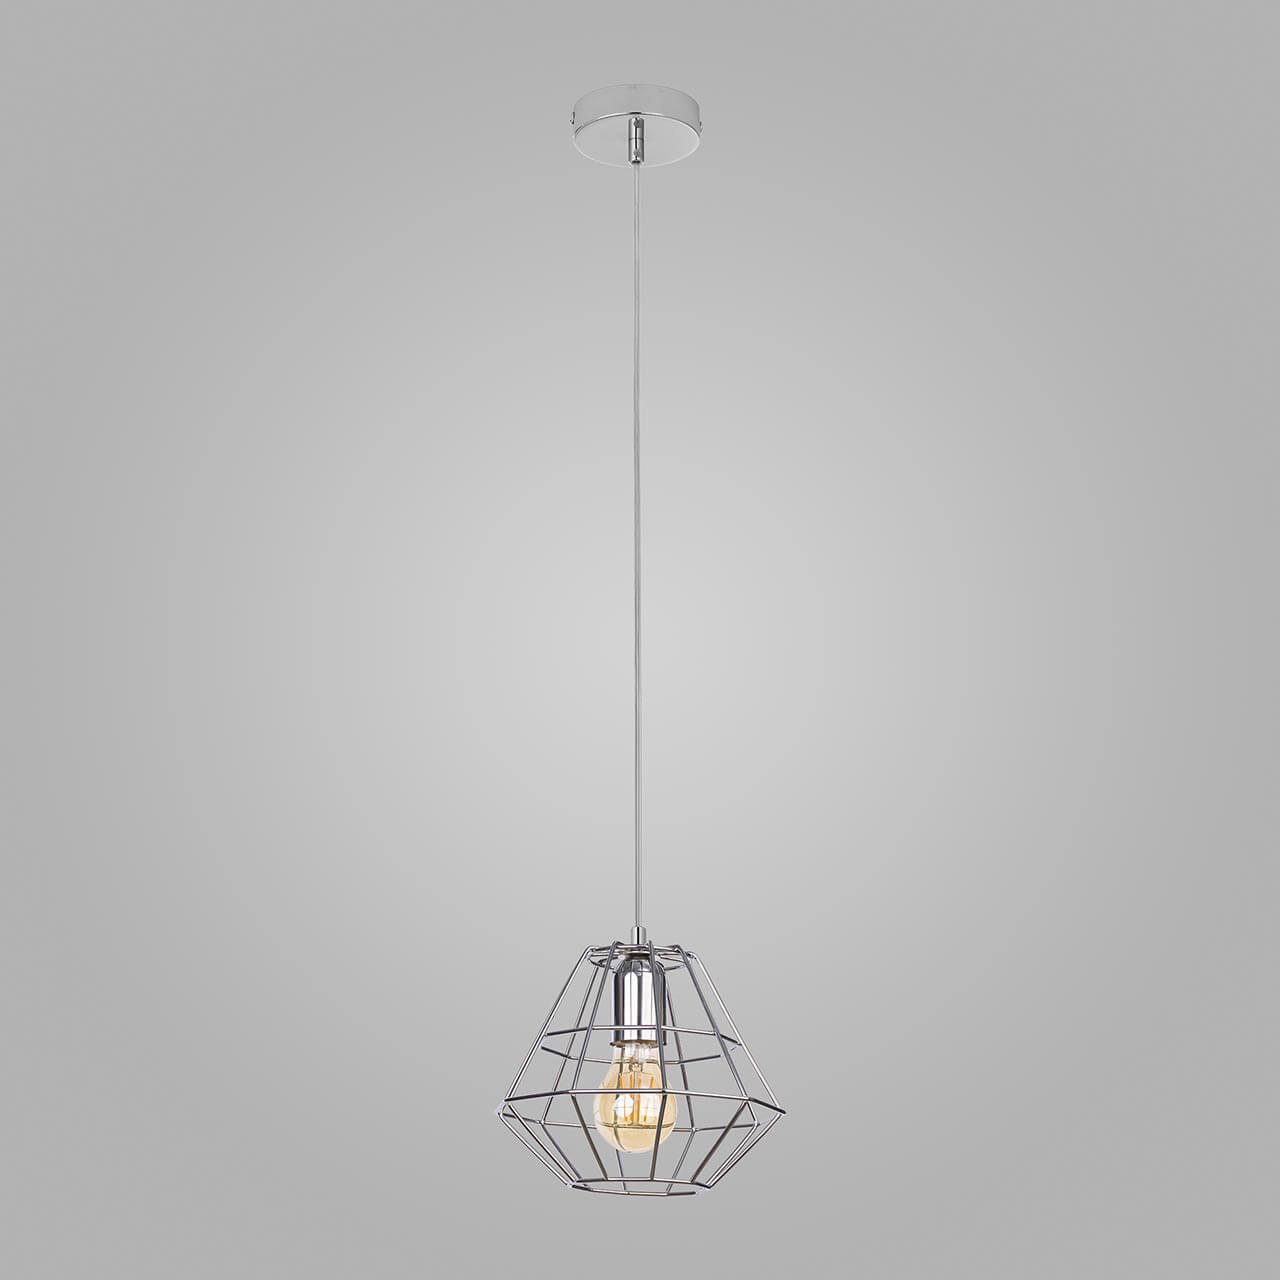 Светильник TK Lighting 4202 Diamond Silver Diamond Silver фото